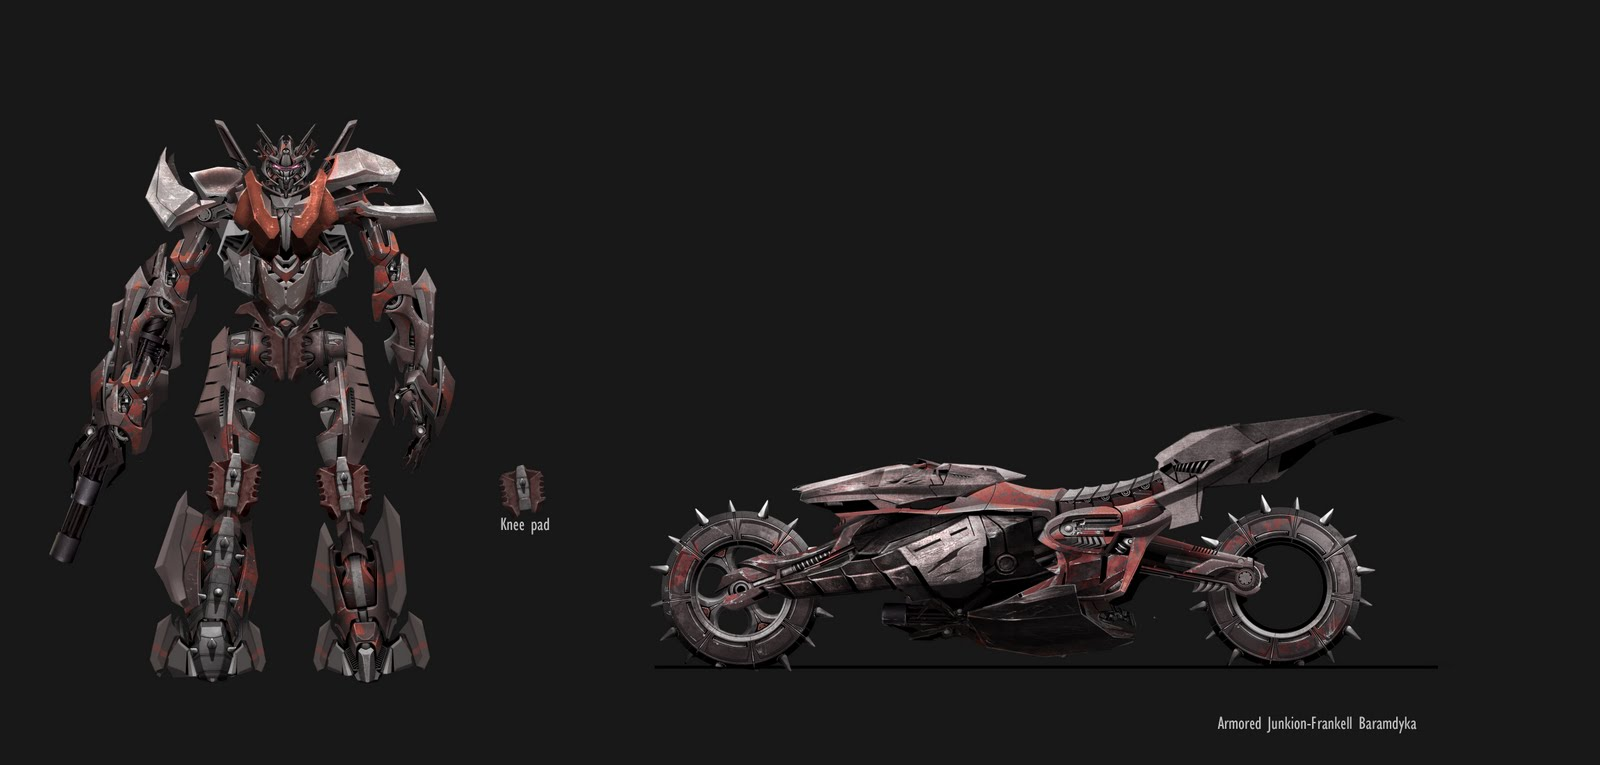 Transformers Fall Of Cybertron Wallpaper Transformers 3 Concept Art Or New Game Concept